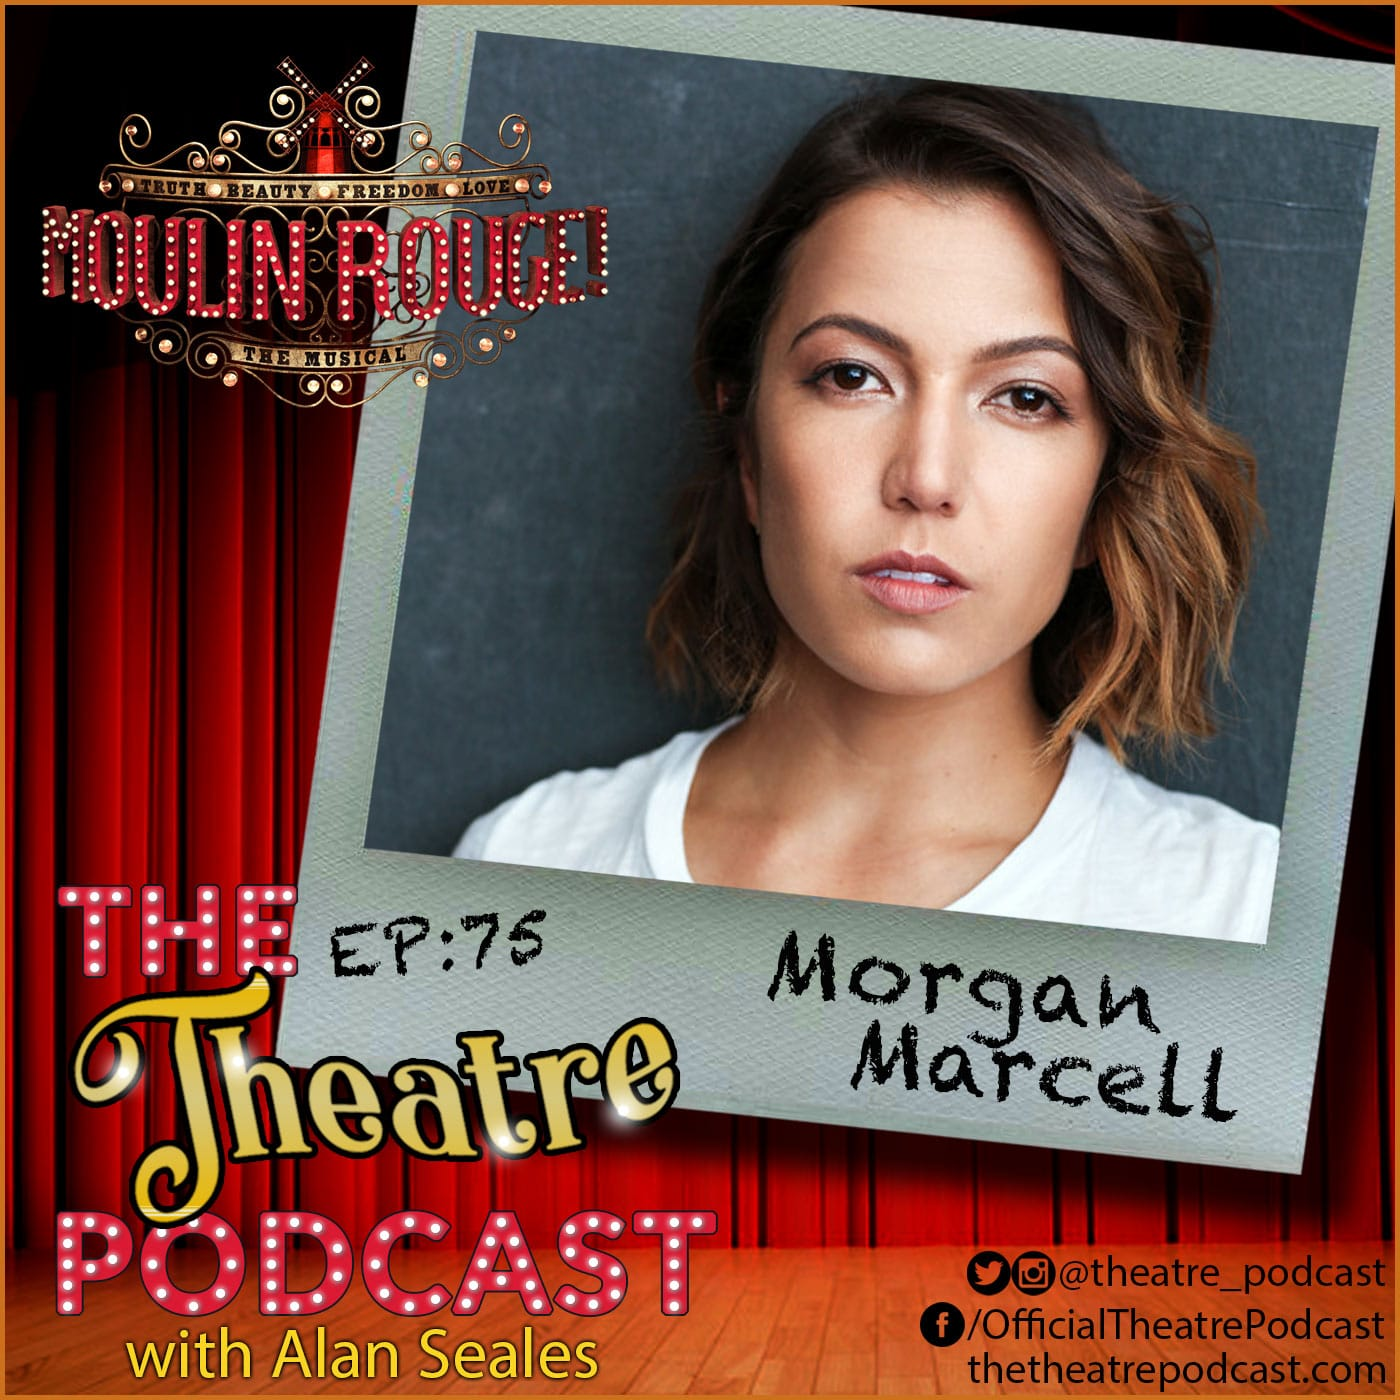 The Theatre Podcast Episode 75 Morgan Marcell, Moulin Rouge